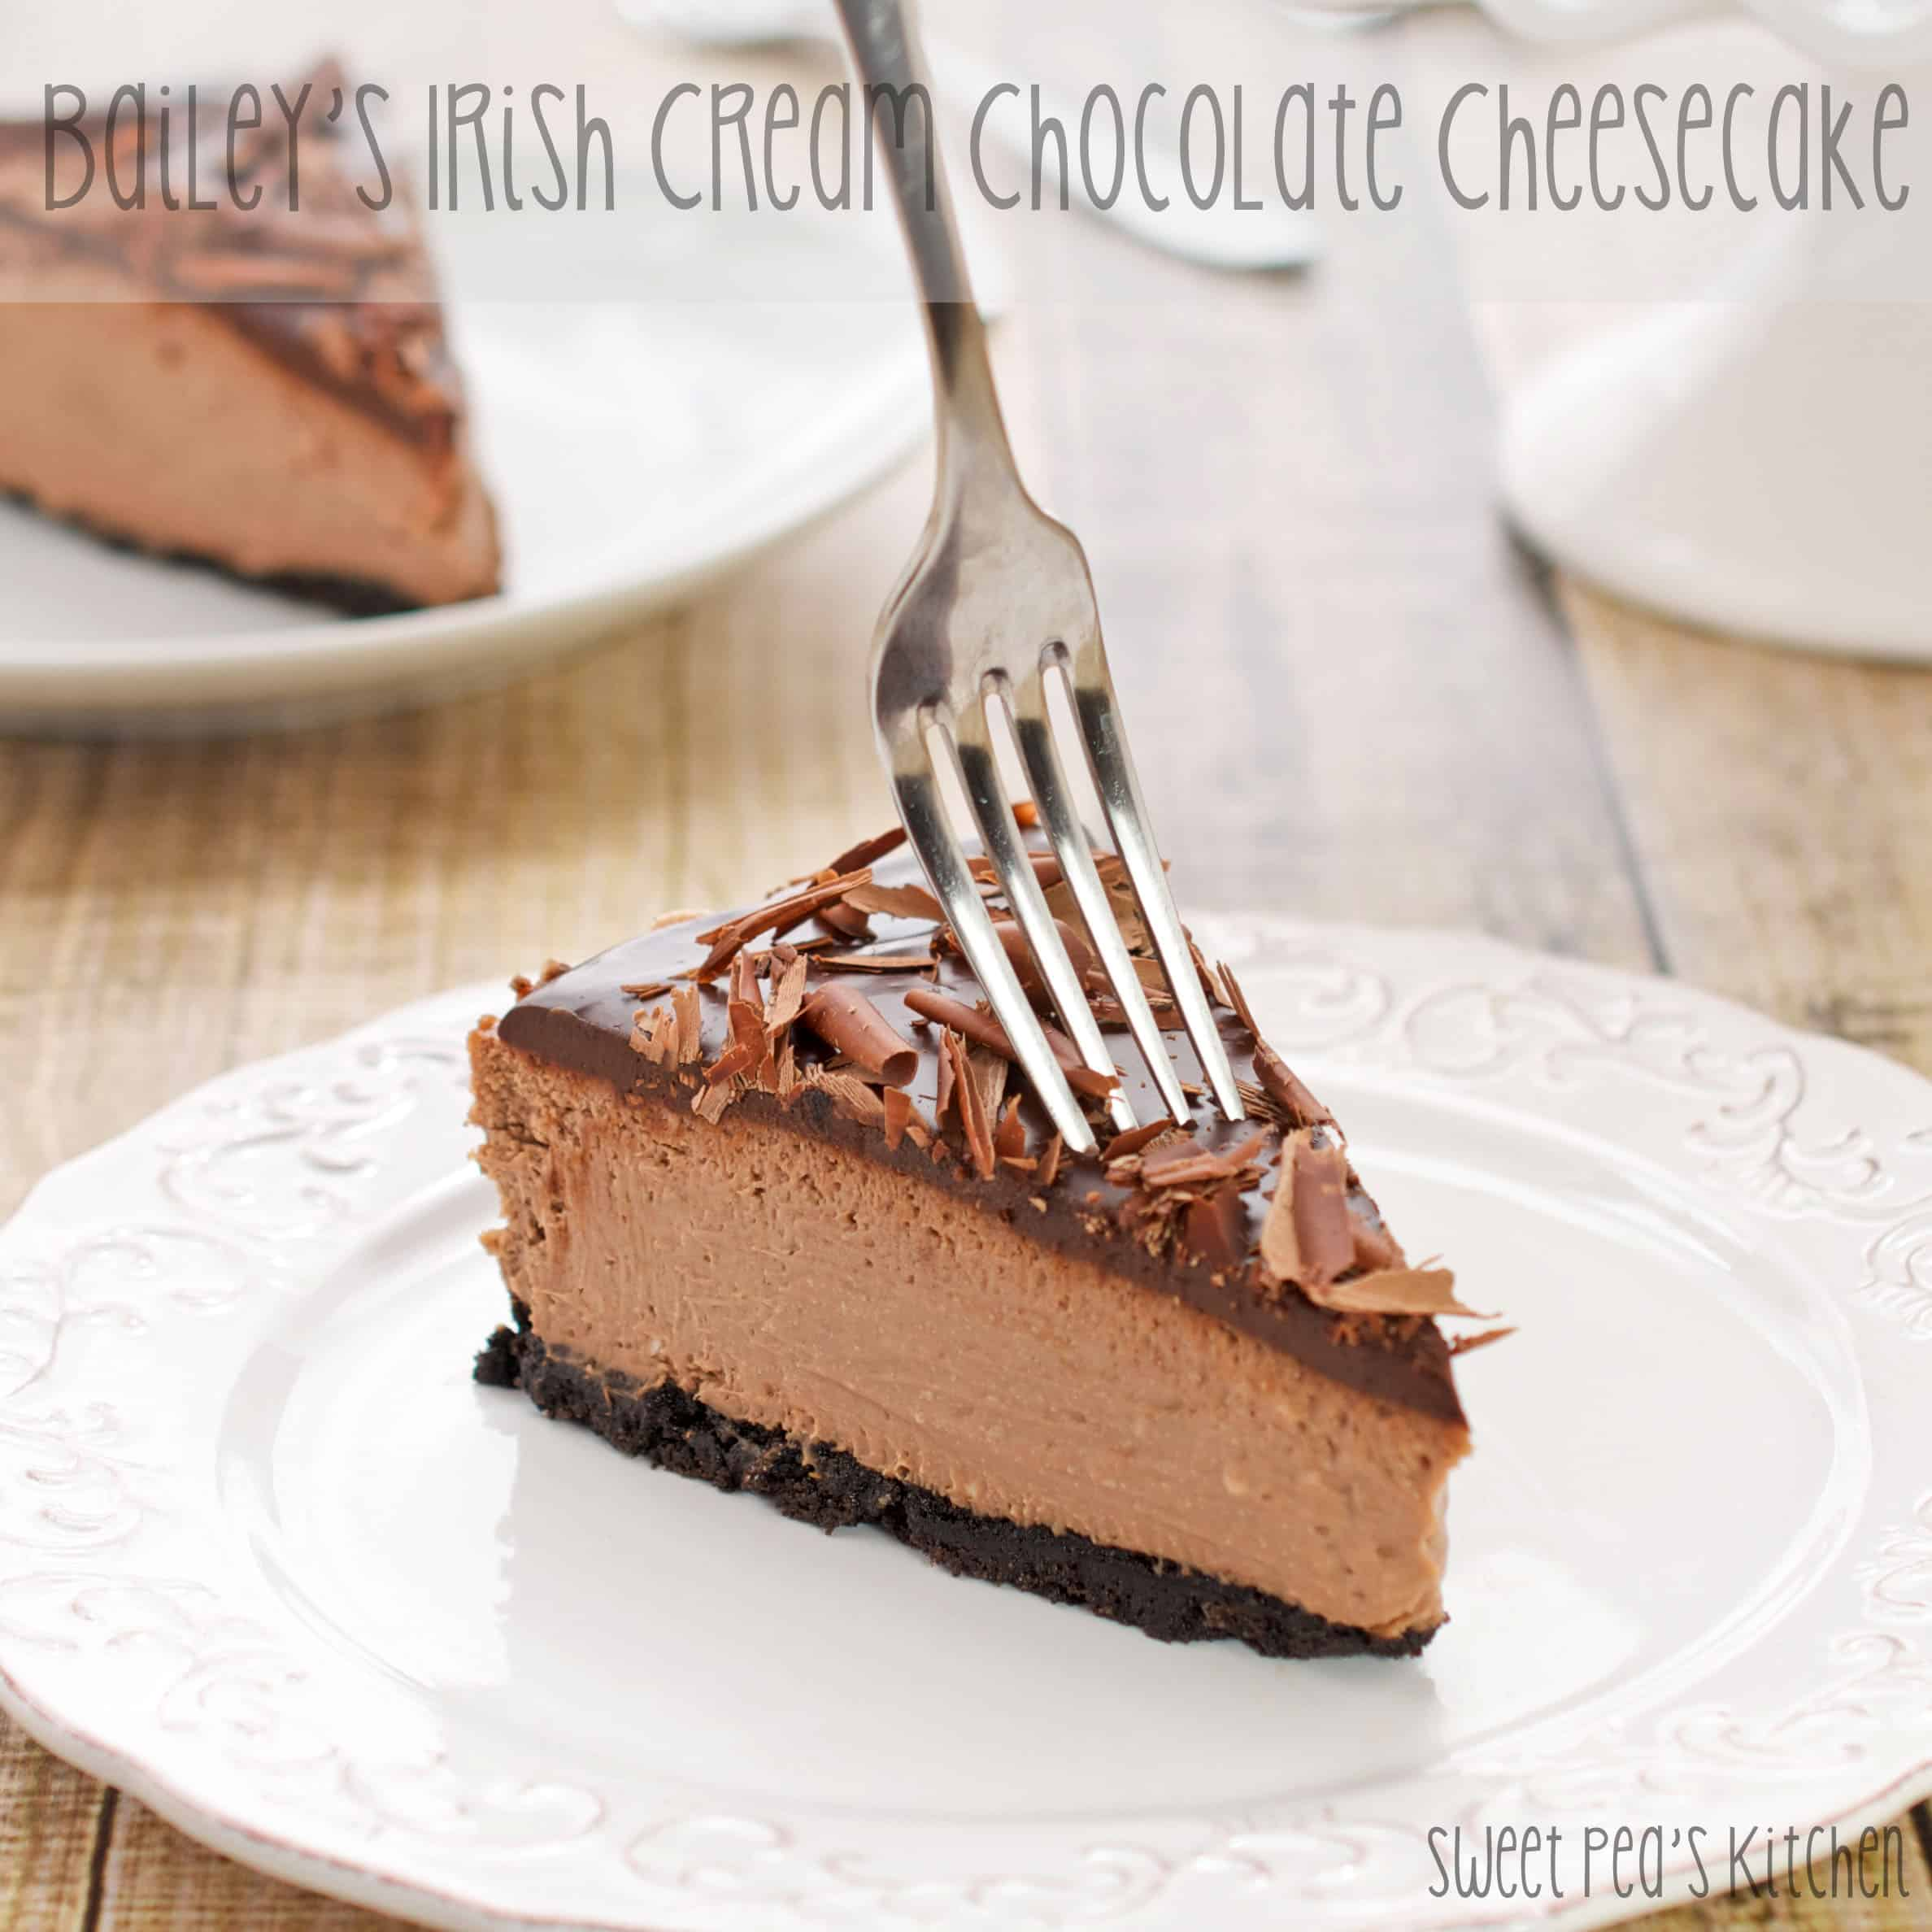 Bailey's Irish Cream Chocolate Cheesecake